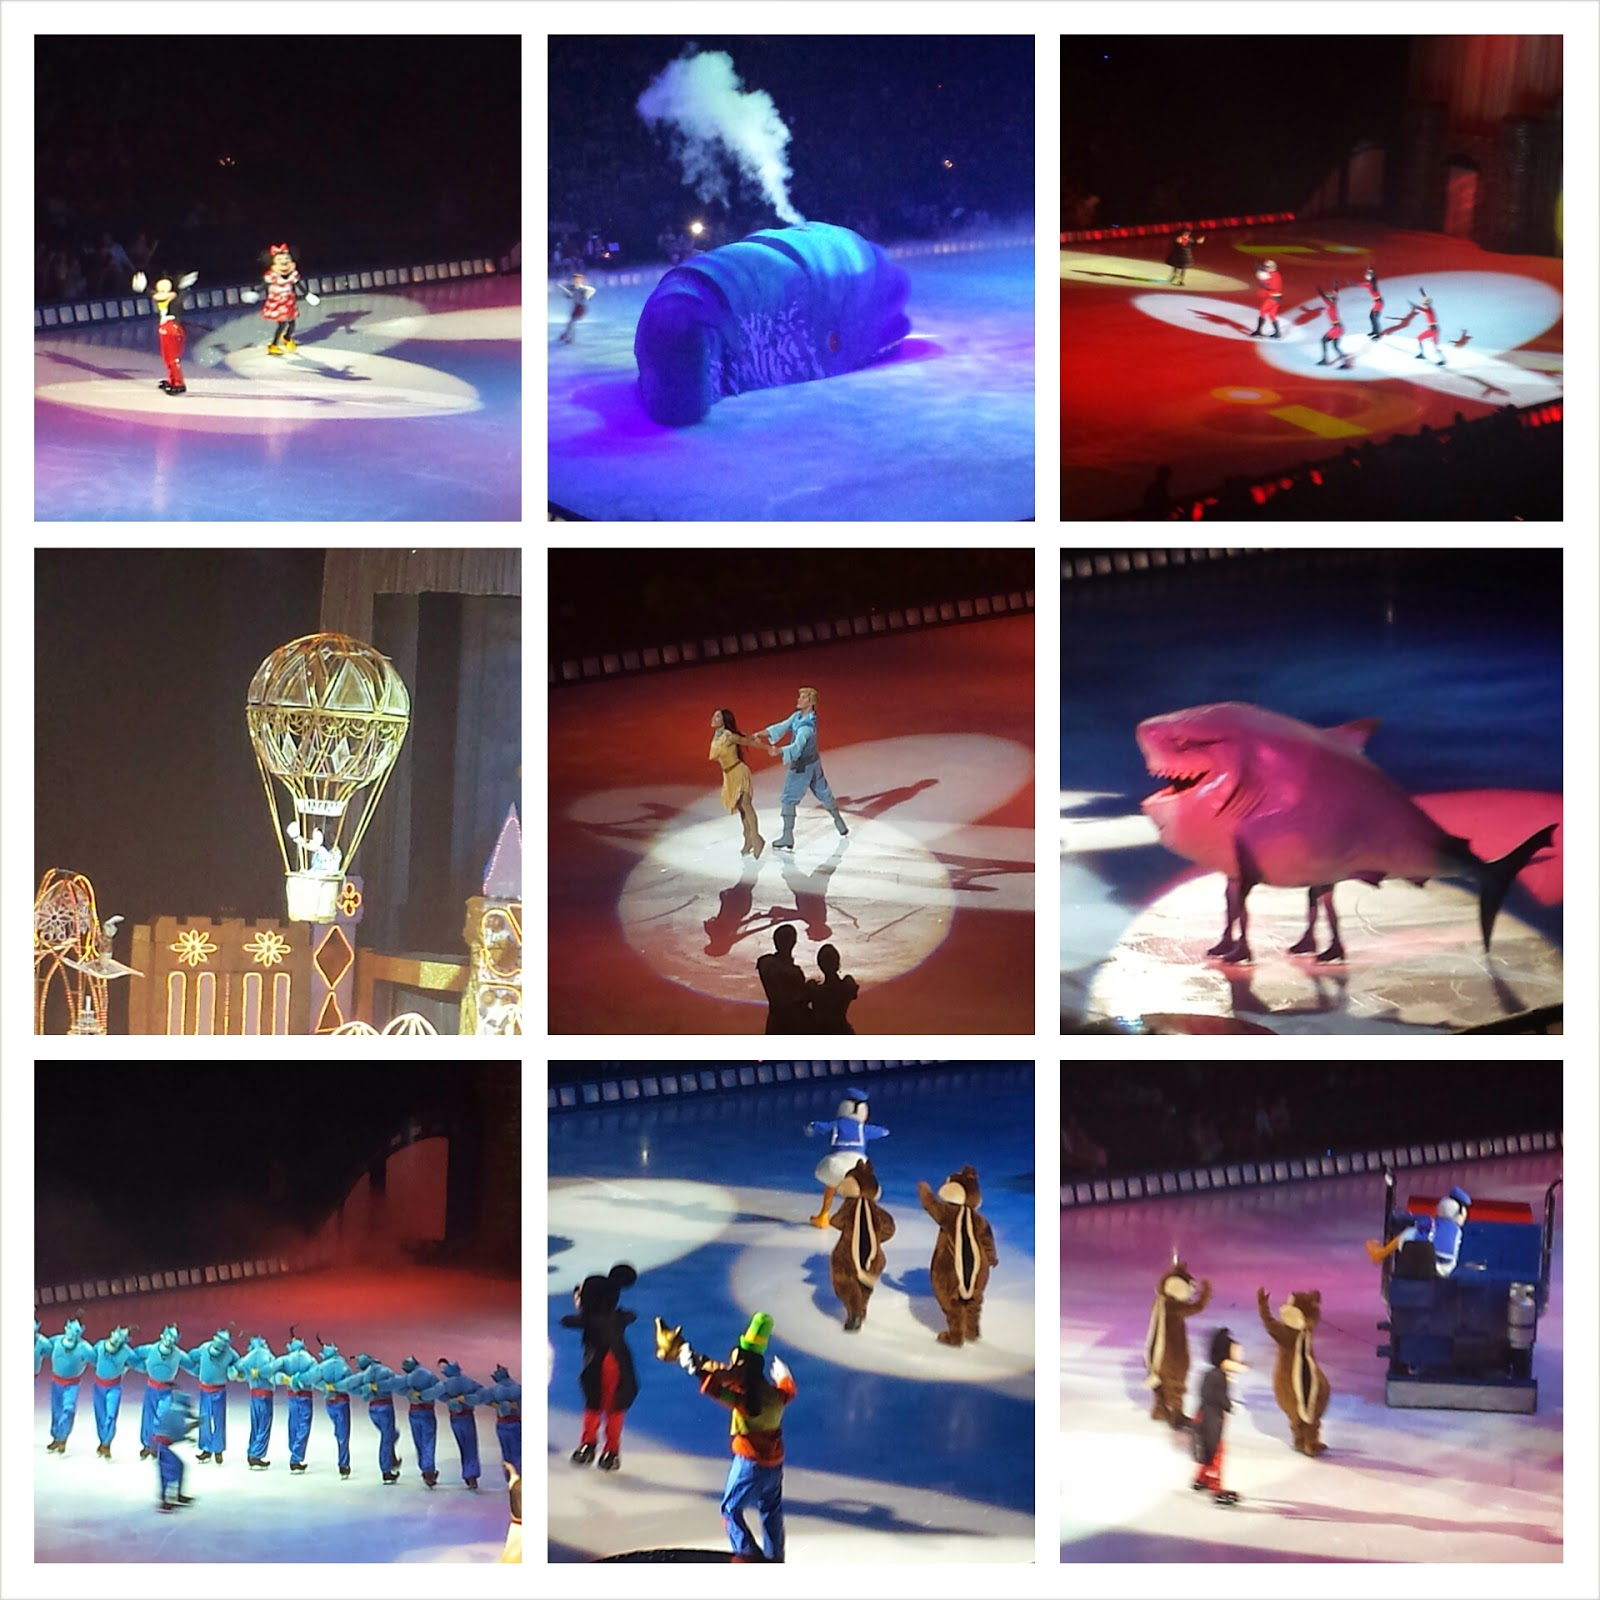 Disney On Ice Atlanta Recap #ATLDOI #Disneyonicegc via ProductReviewMom.com